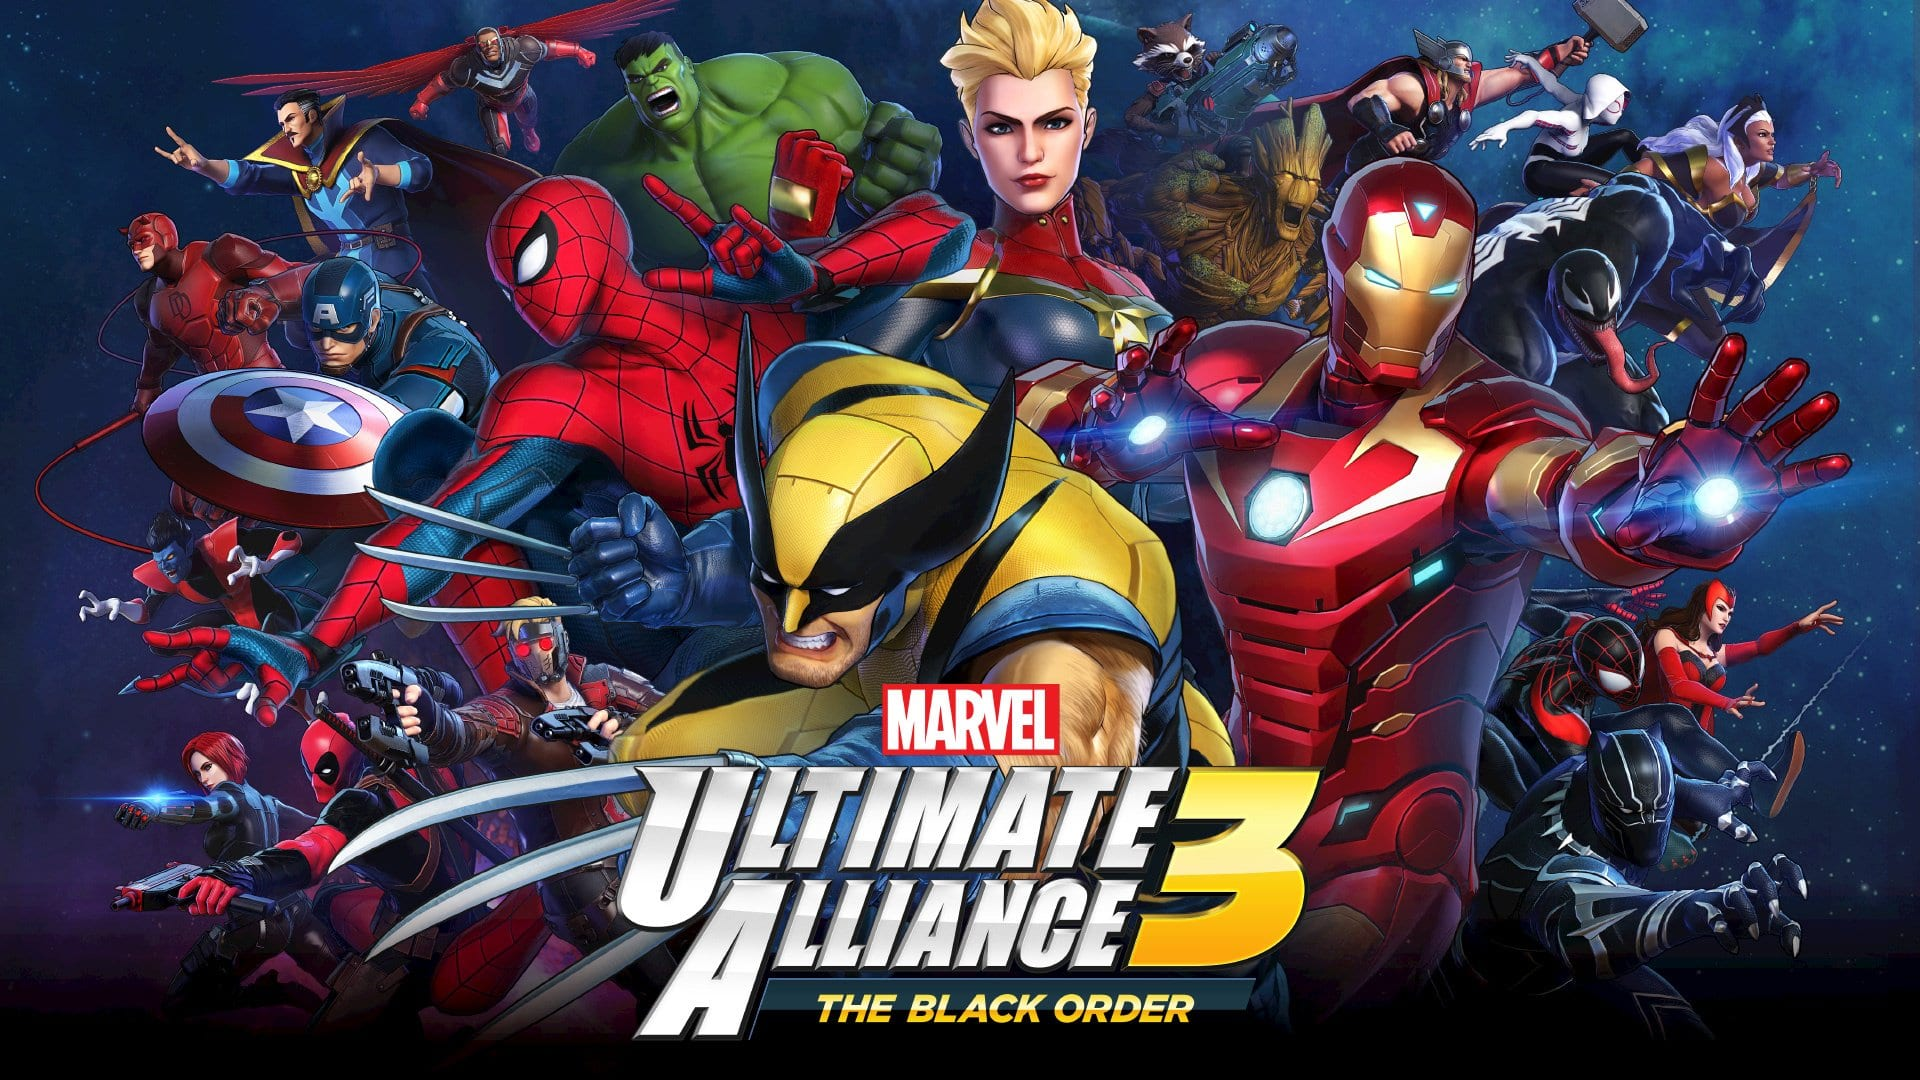 Marvel Ultimate Alliance 3 title